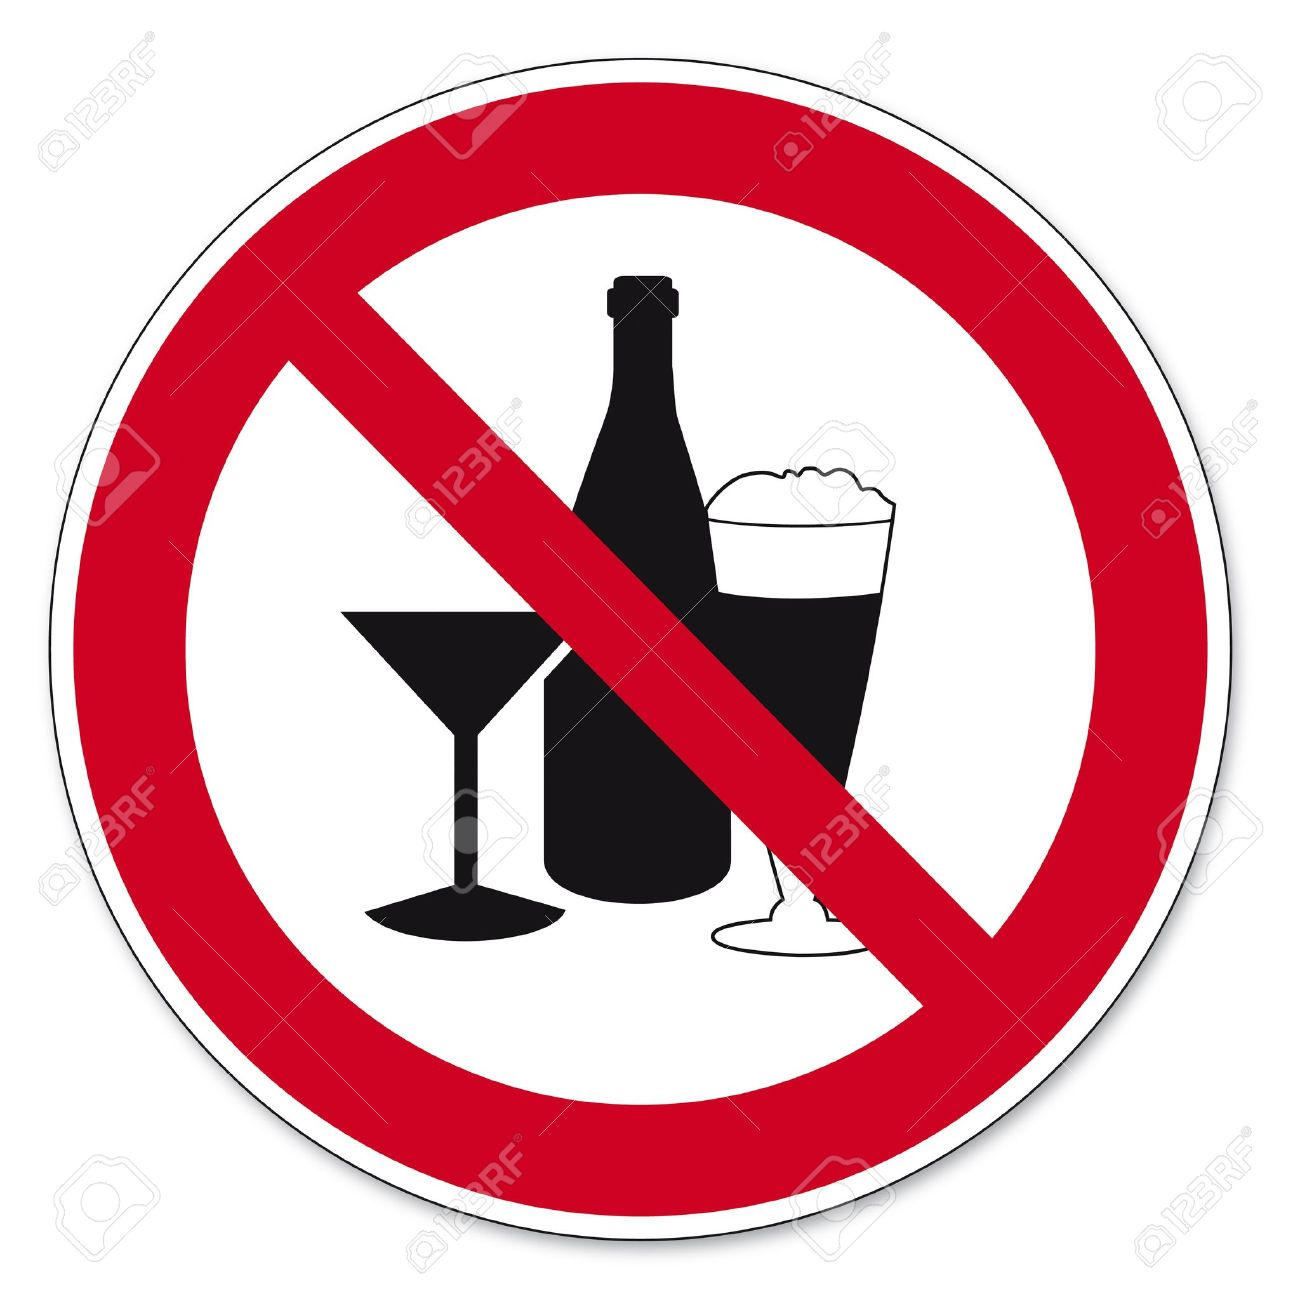 Prohibition signs BGV icon pictogram Consumption of alcohol prohibited Stock Vector - 14513019